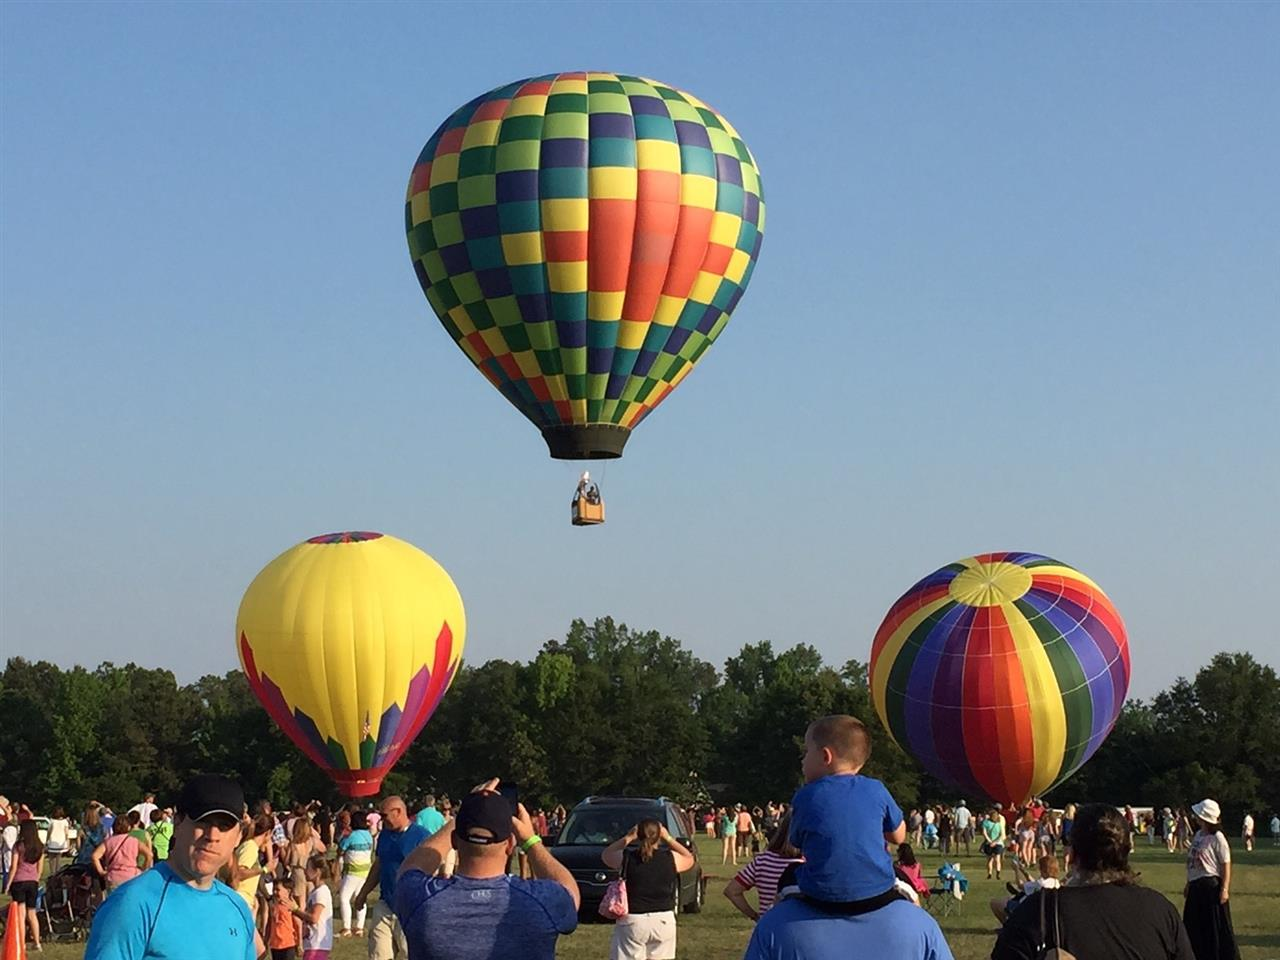 Balloon Festival near Fayetteville, North Carollina.  Submitted by Townsend Real Estate.